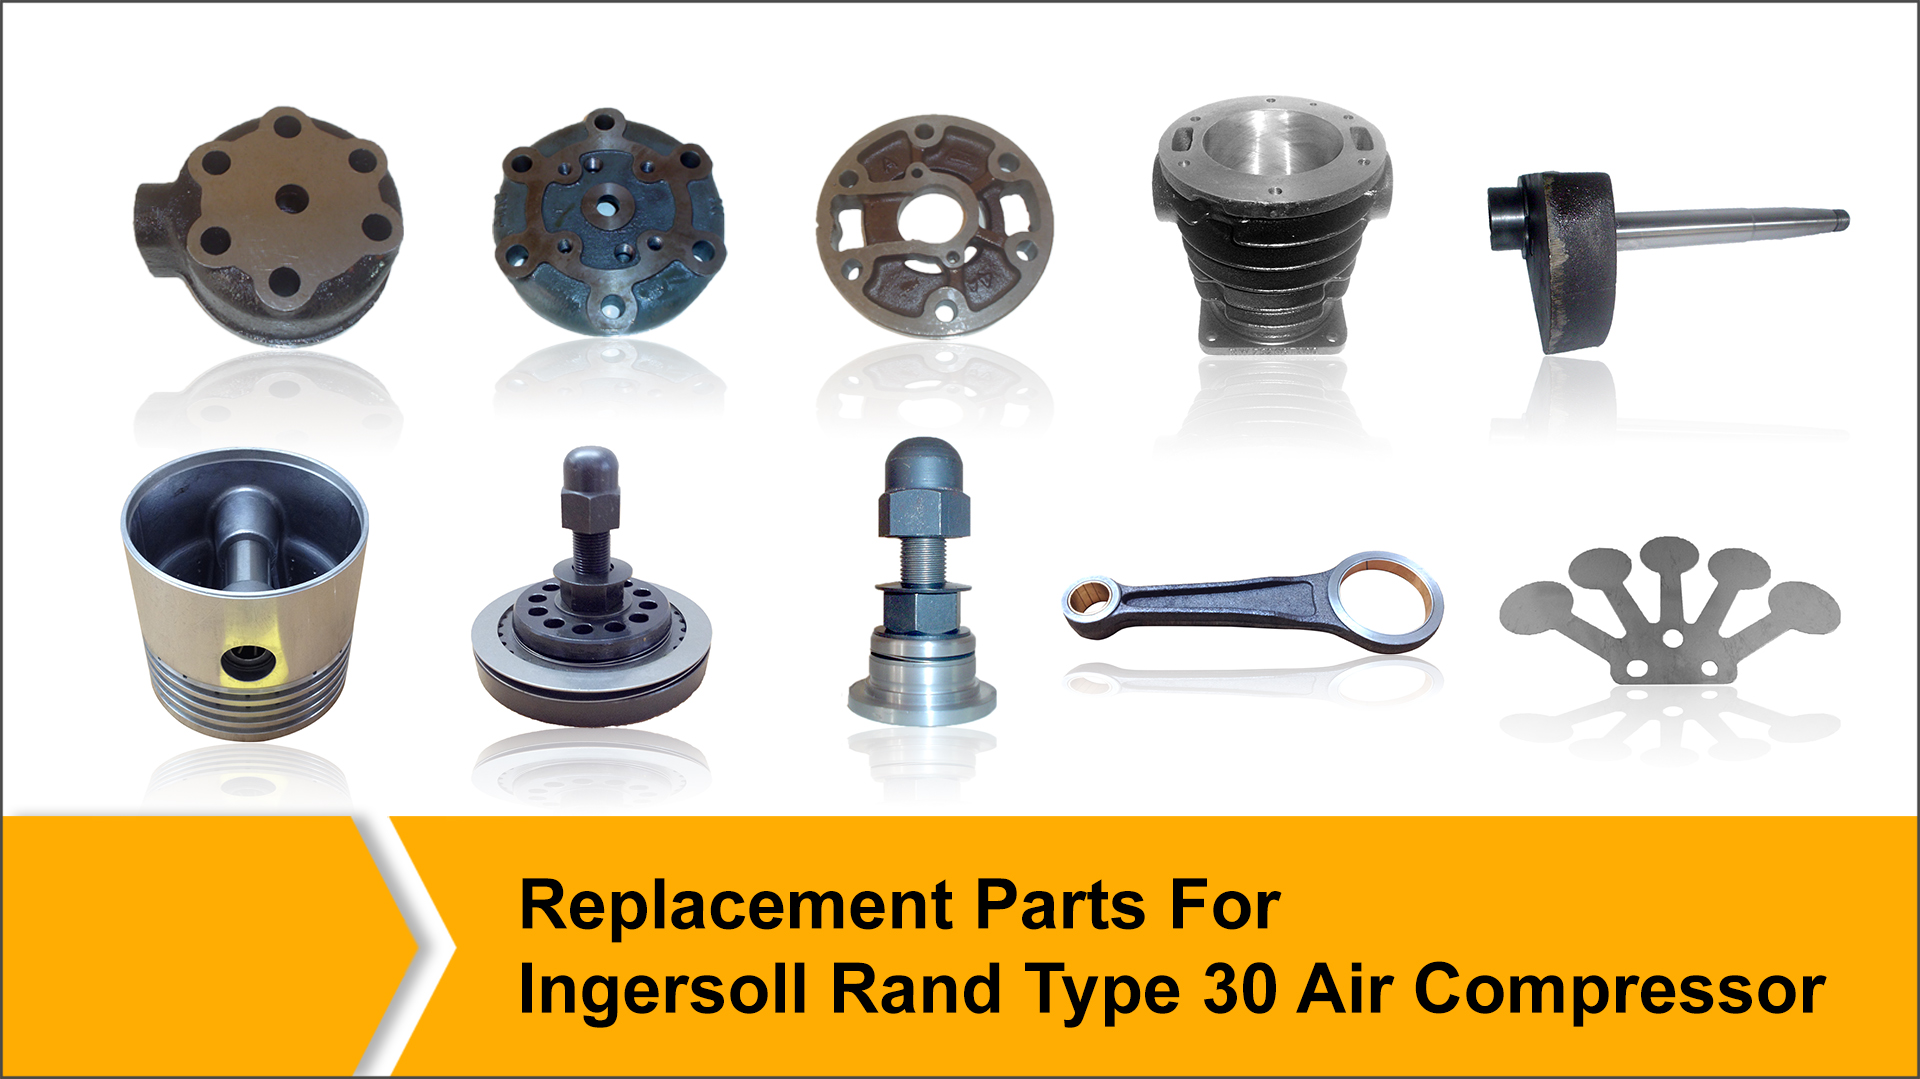 Replacement Parts for ingersoll Rand Type 30 Air Commpressor